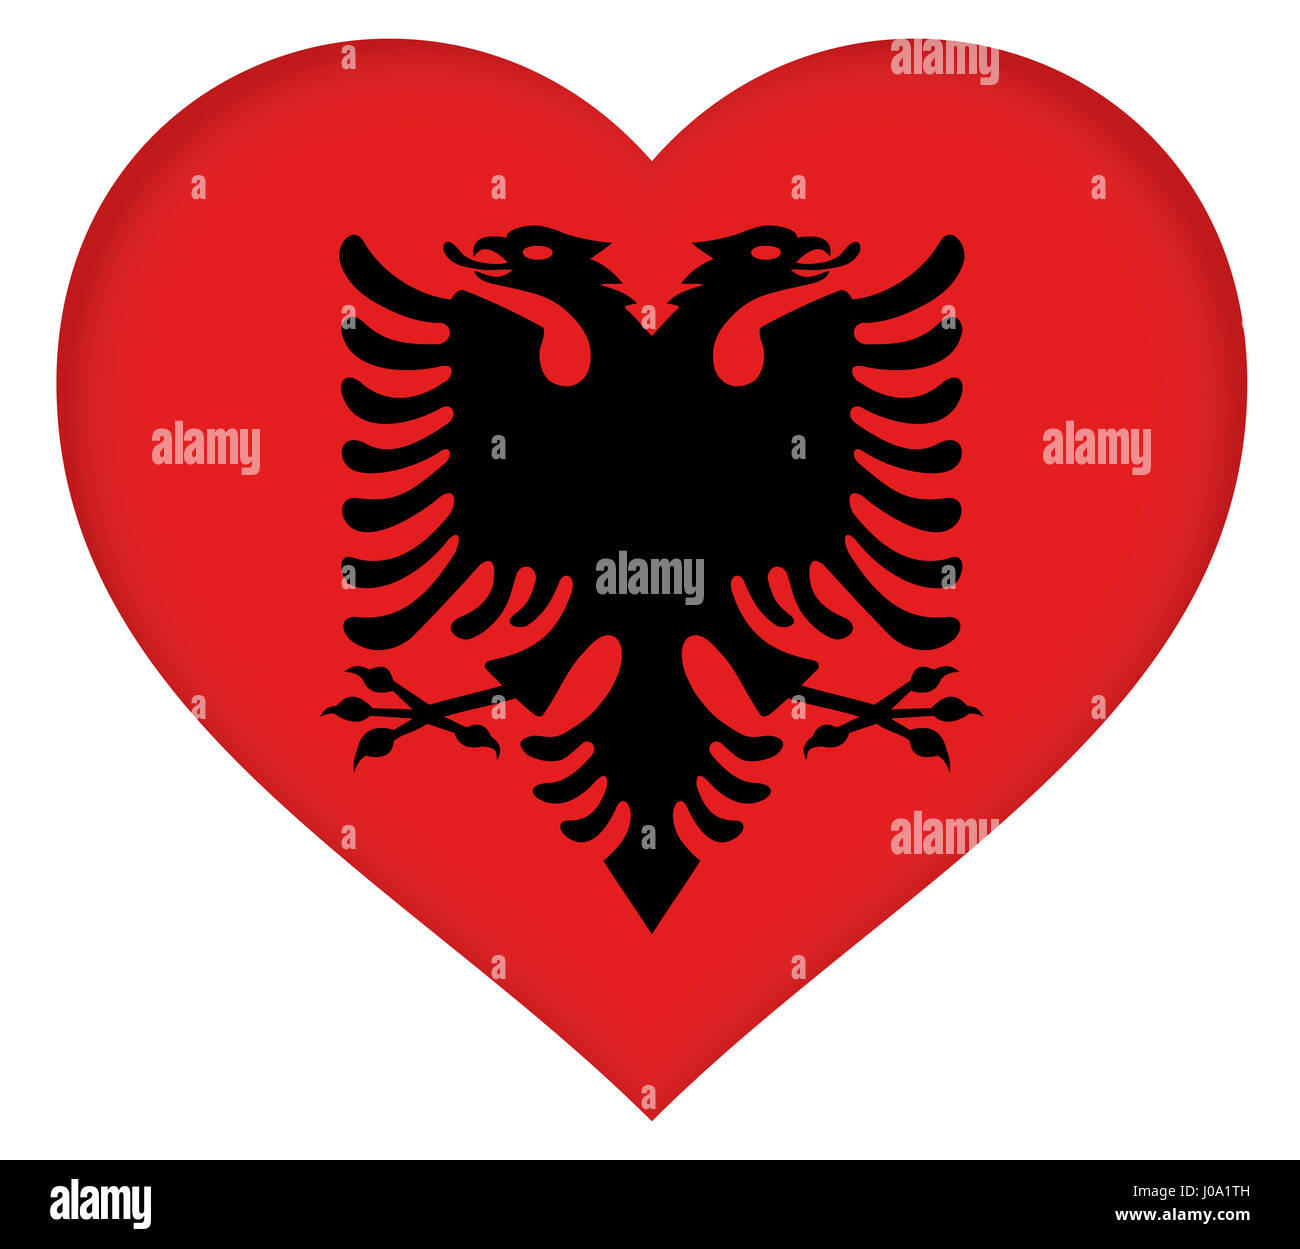 Flag of Albania Heart by Roy Pedersen.                     www.roypedersenphotography.com                       - Stock Image